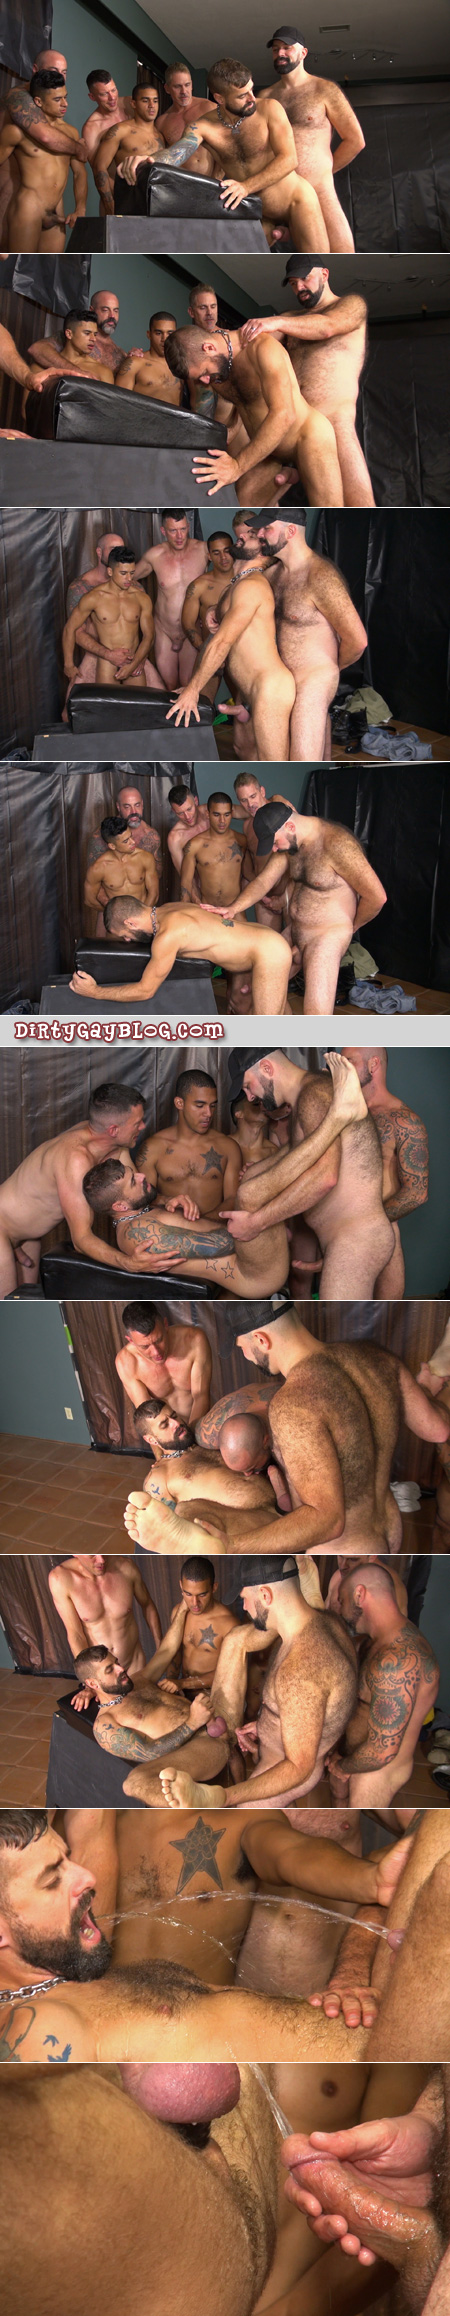 Hairy guys fucking and pissing while a group of naked men watches.